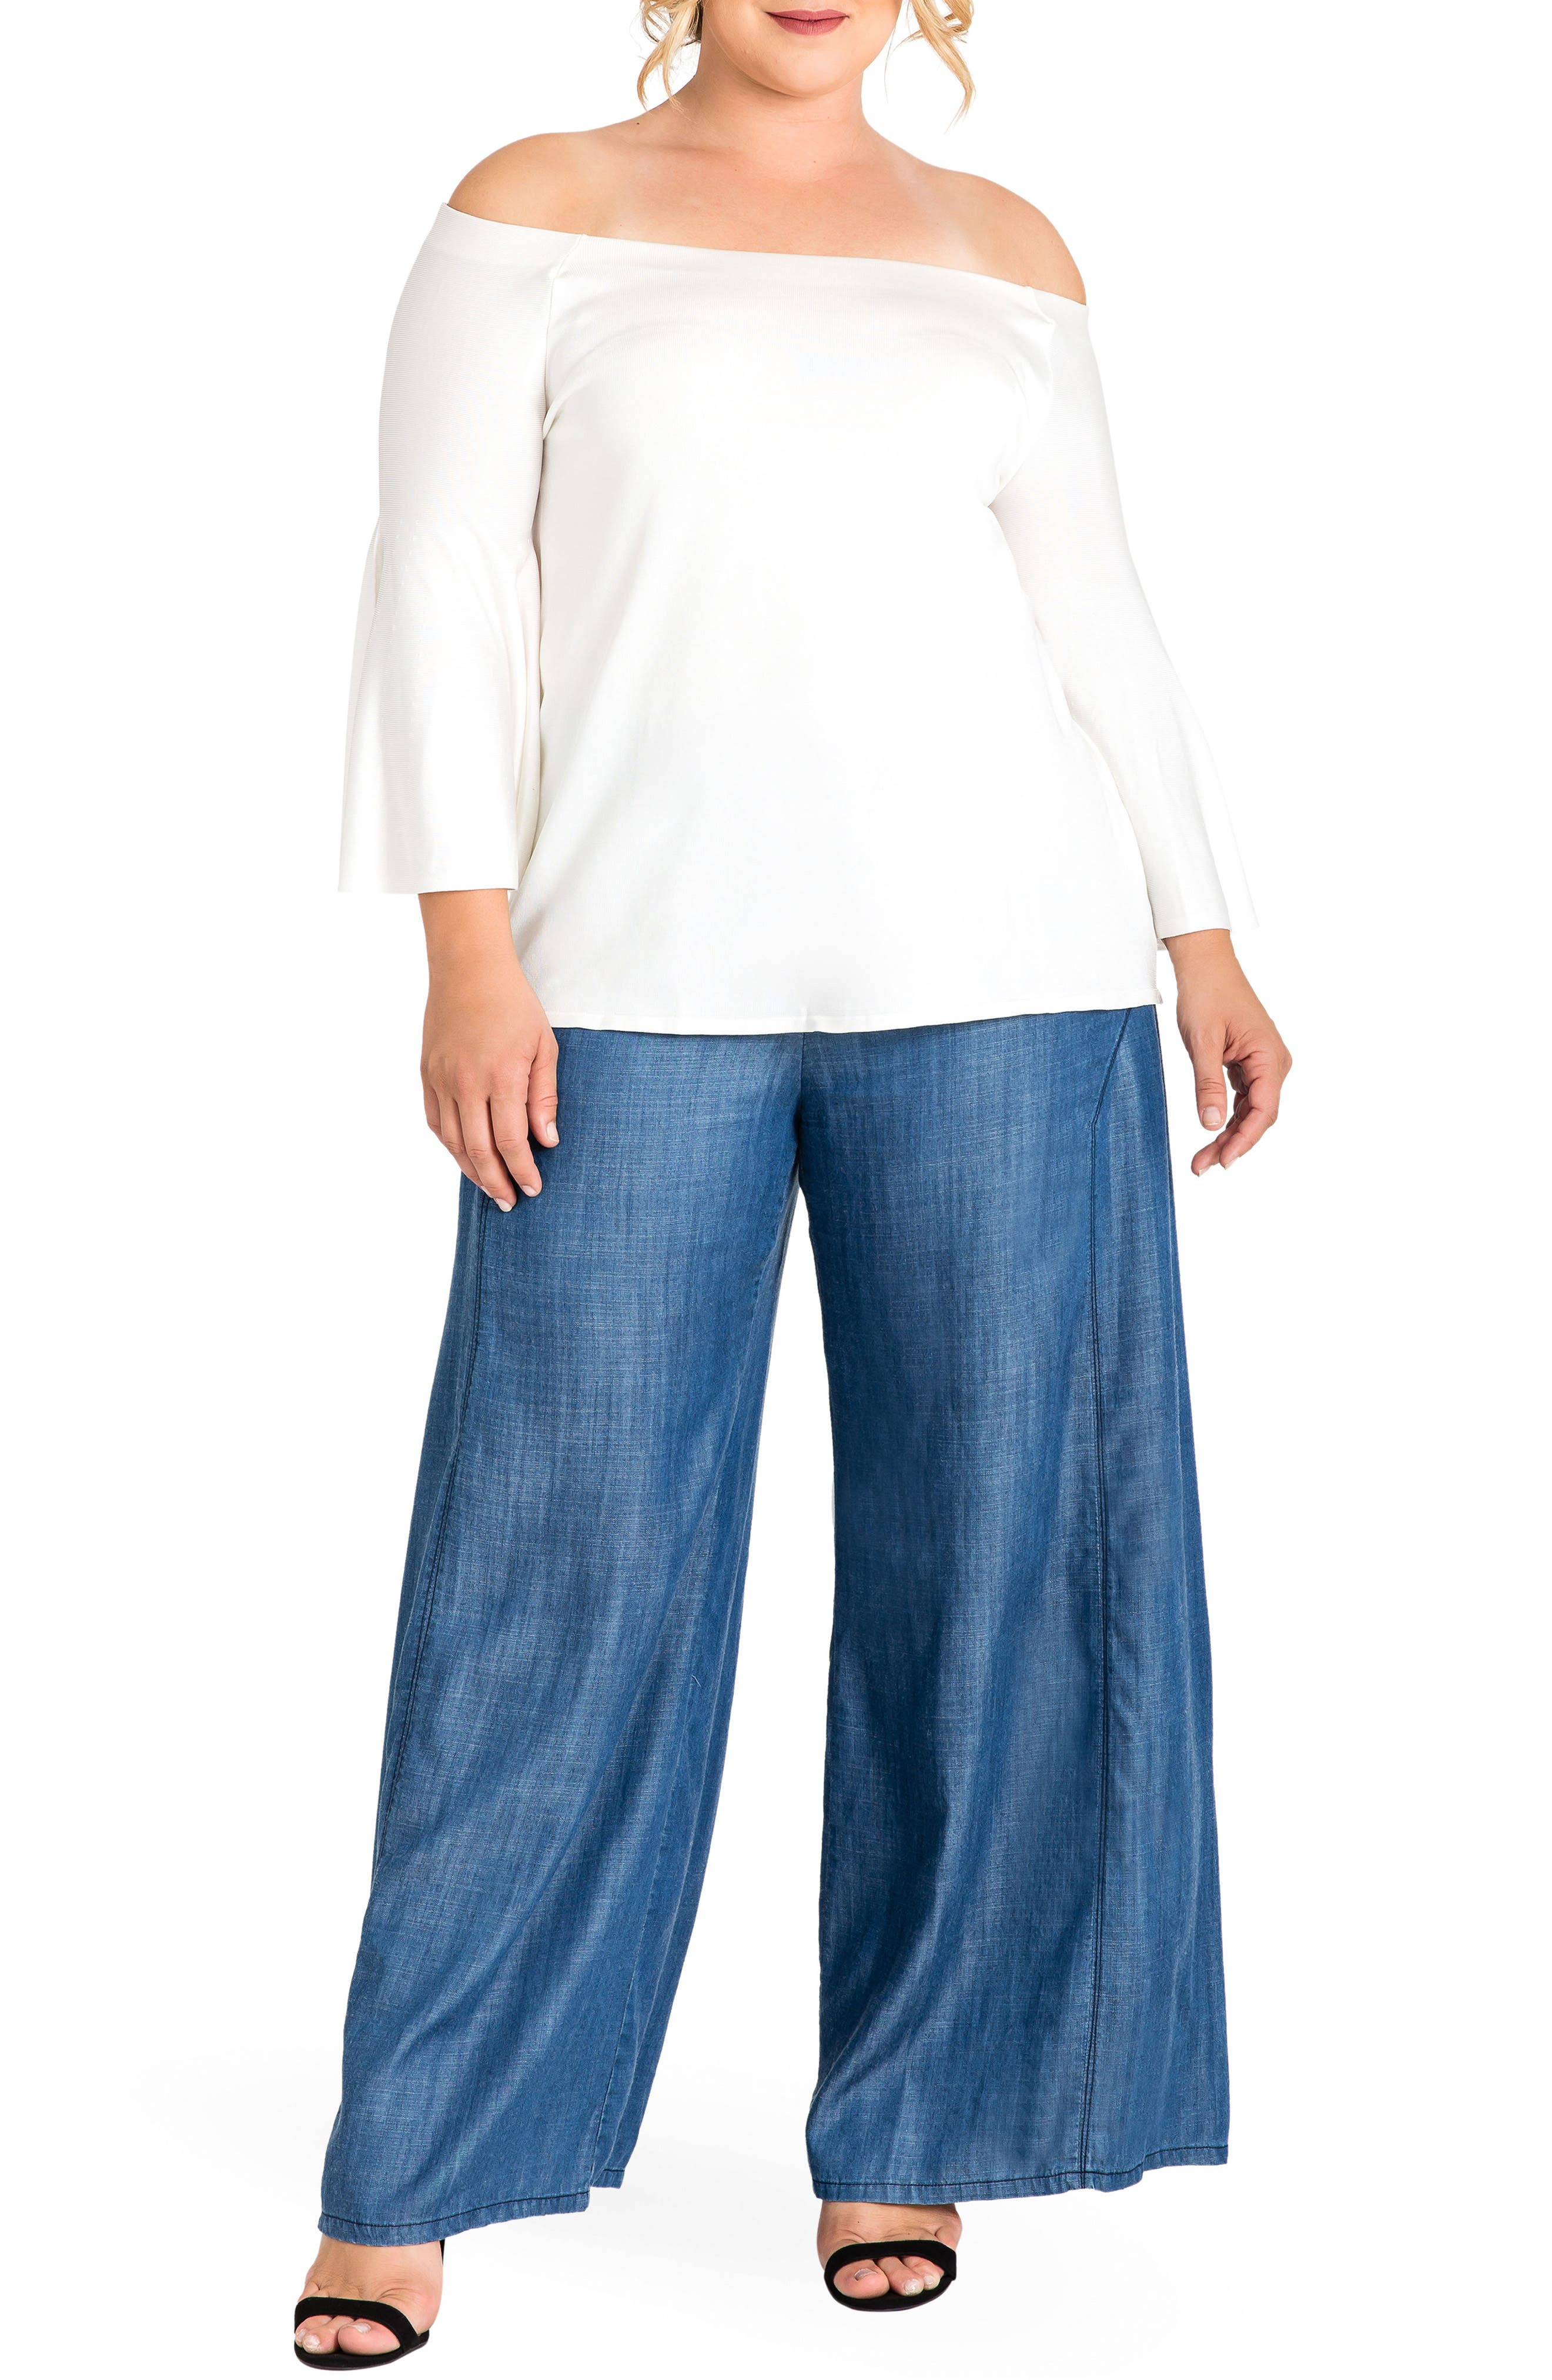 Alternate Image 2  - Standards & Practices Perry Tencel® Denim Palazzo Pants (Plus Size)